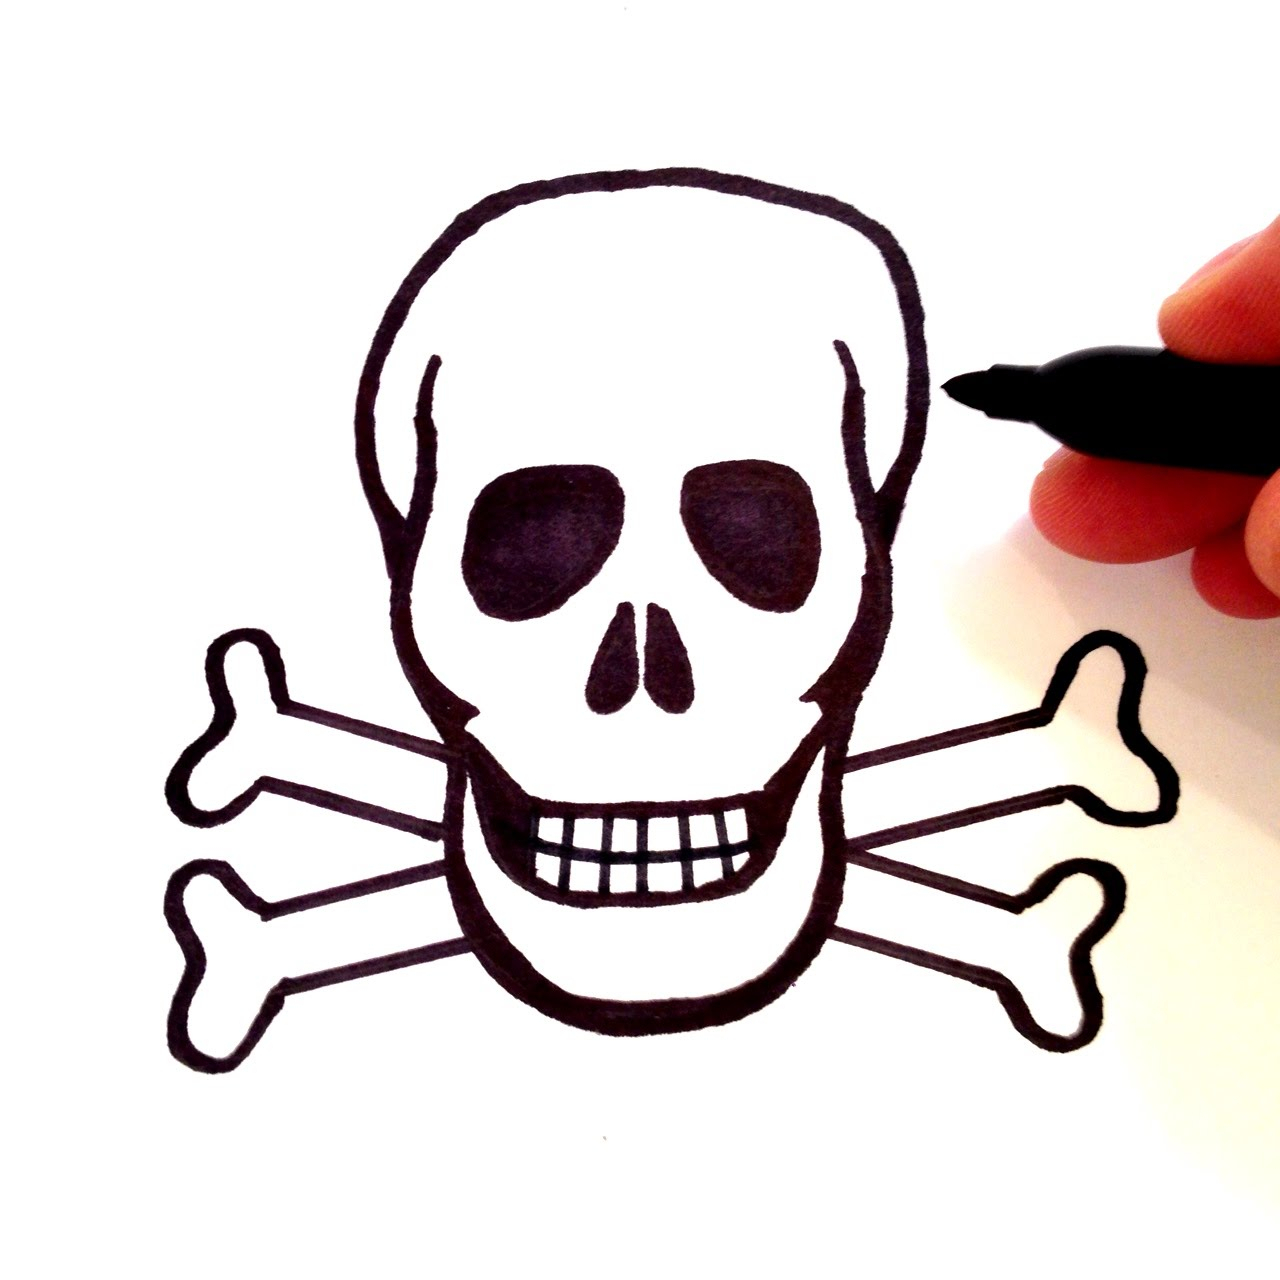 1280x1280 Easy To Draw Skull And Crossbones